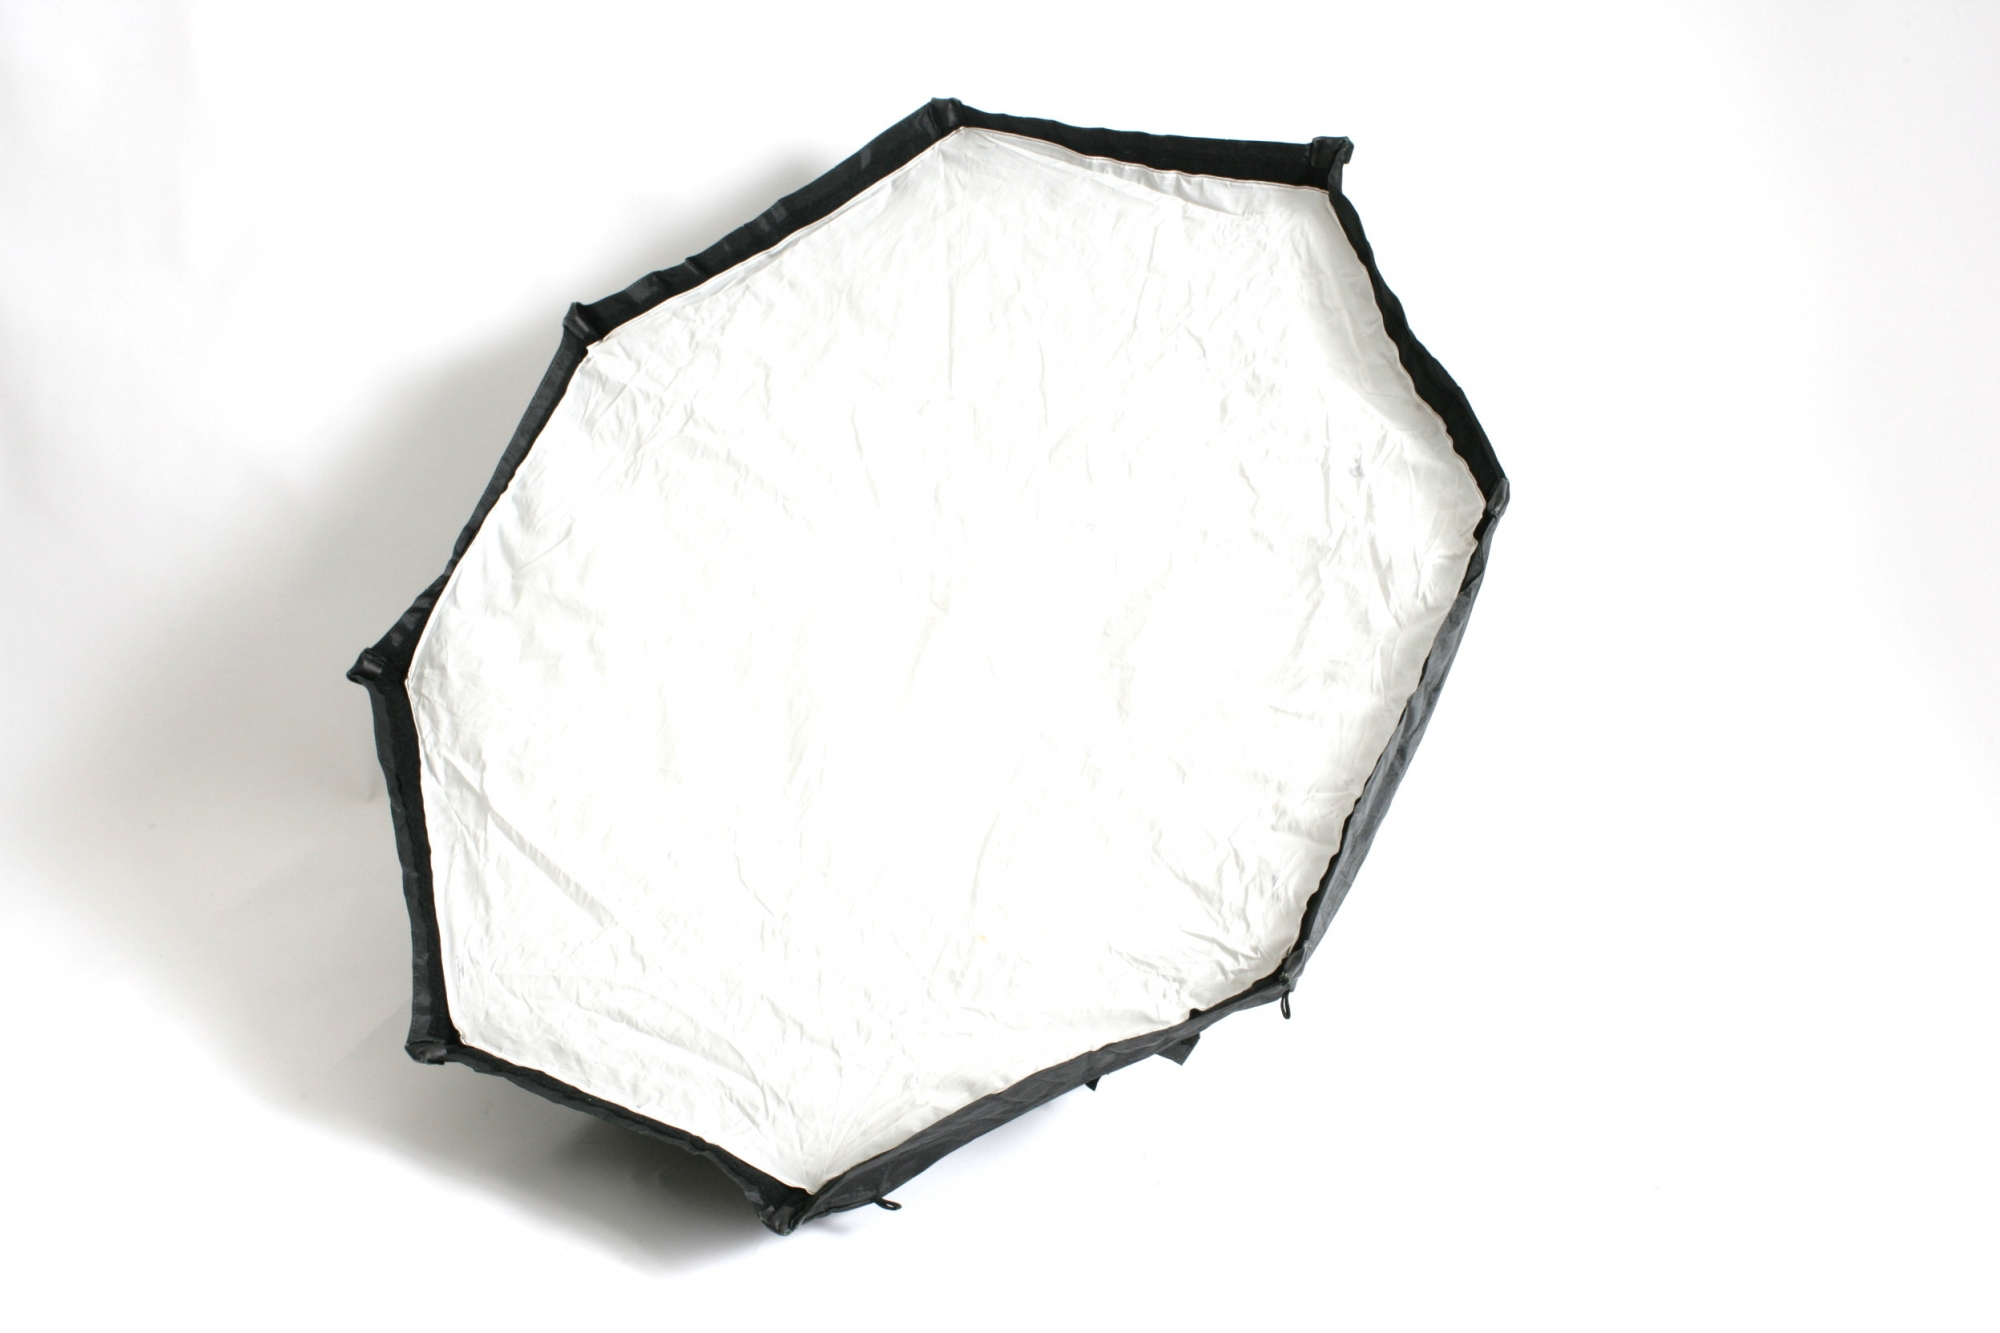 1 x Profoto hexaganol soft box £10 per day